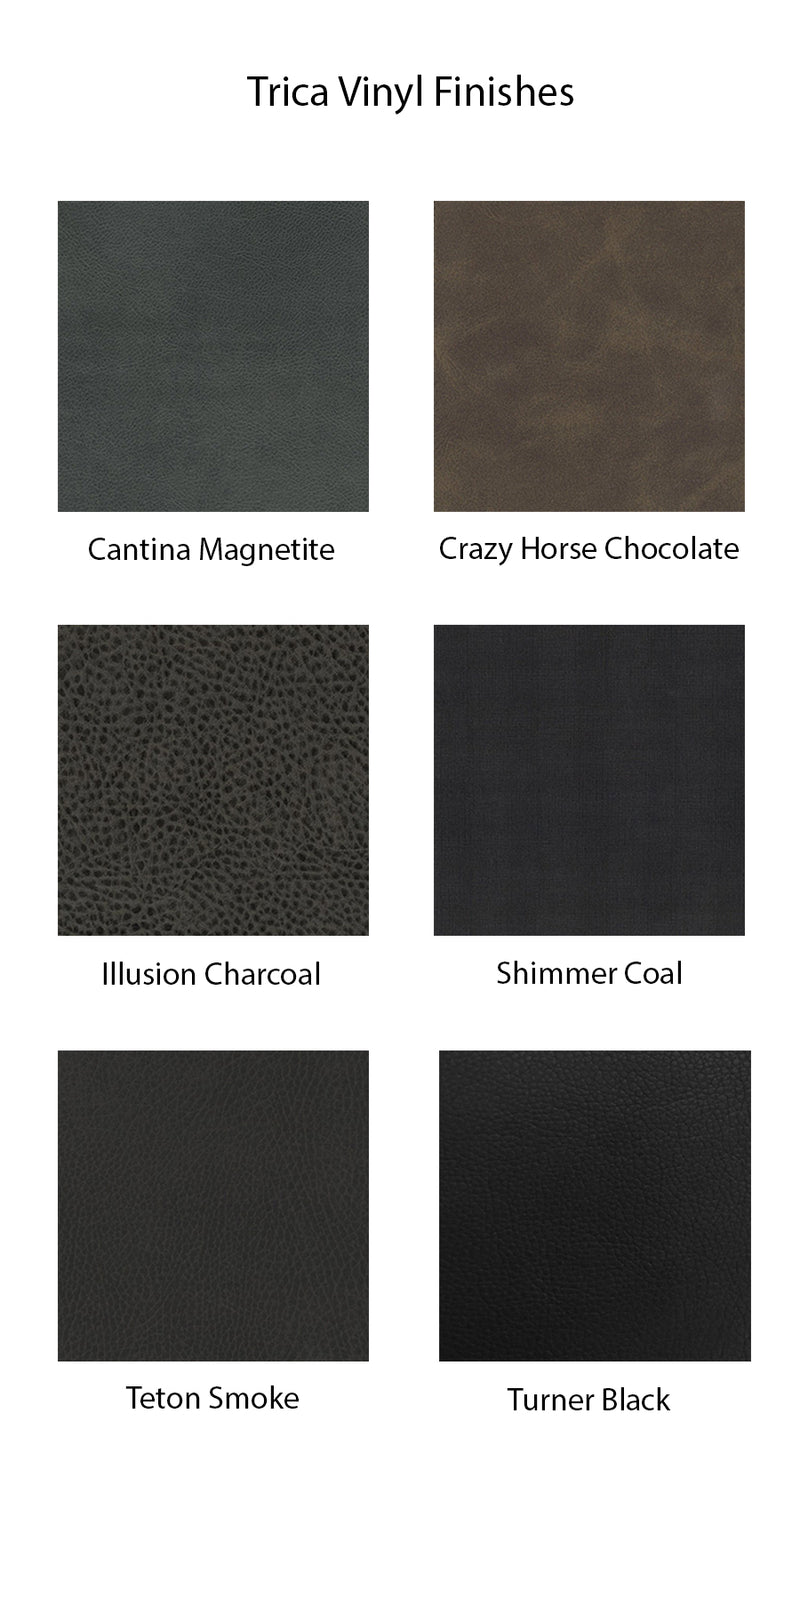 products/vinyl-finishes-trica_7b64acb5-03d7-48e3-98f6-6ad019449f88.jpg